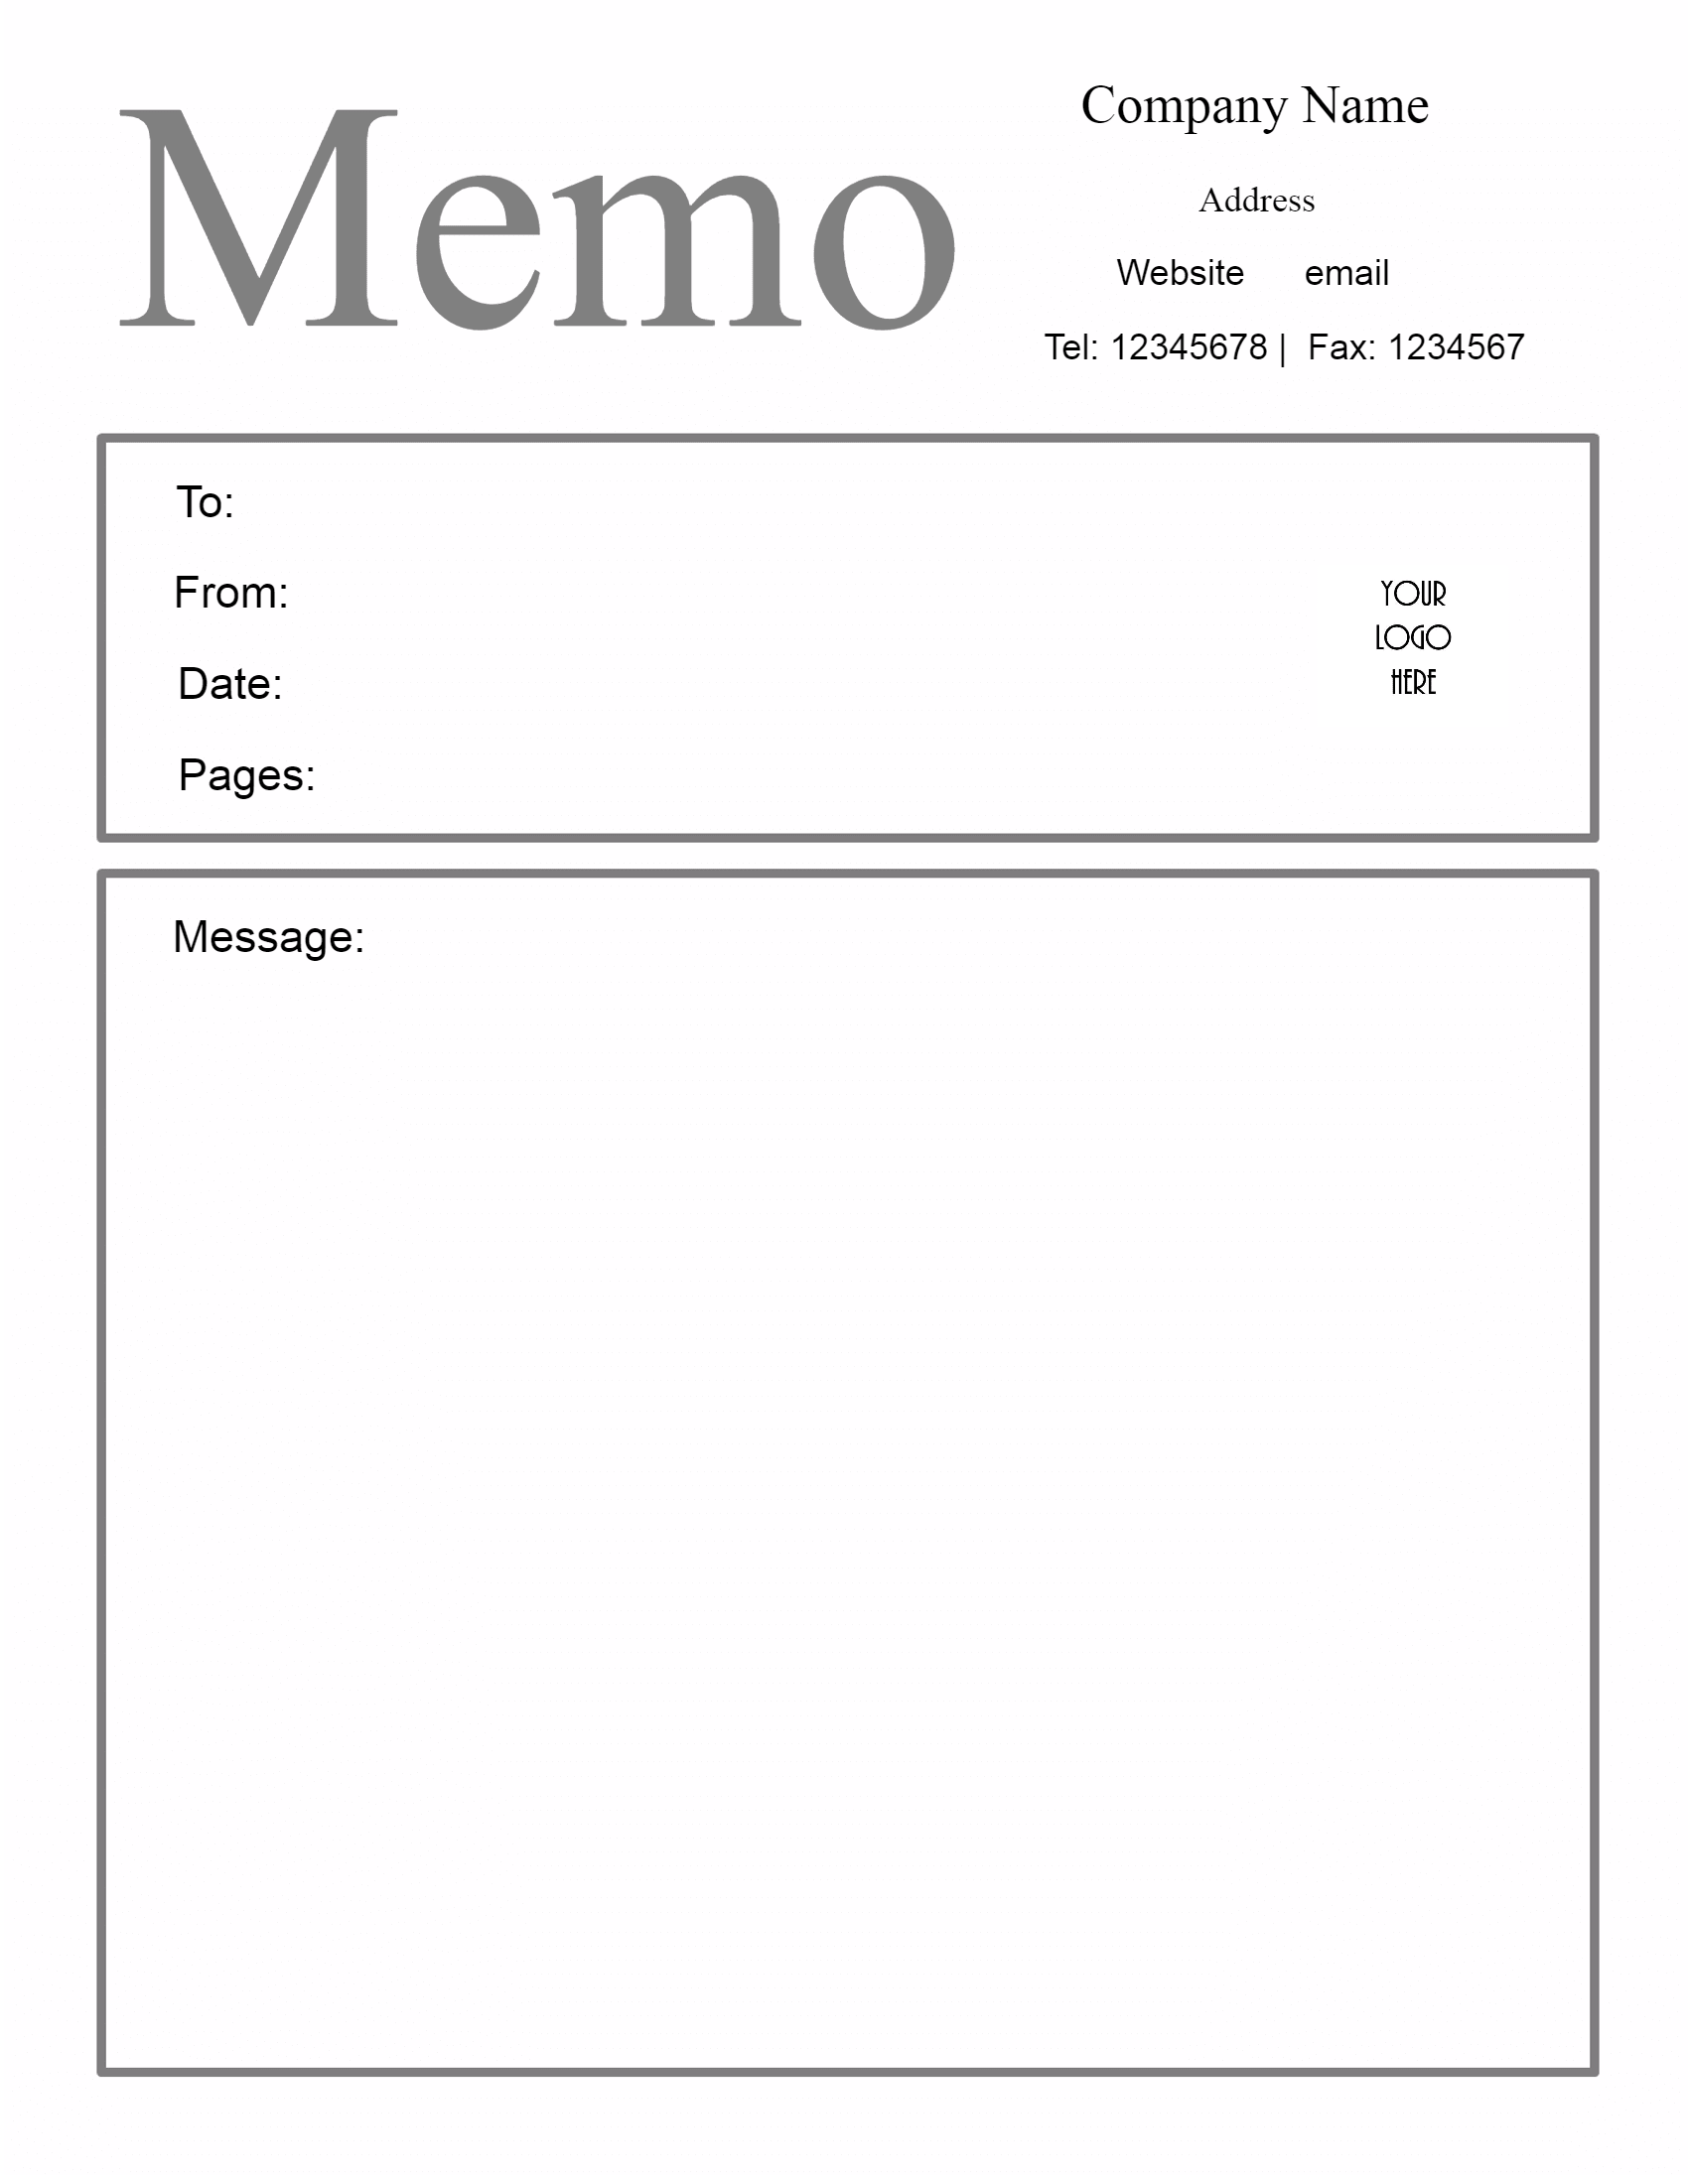 Memo Template. Free Printable  Free Business Stationery Templates For Word